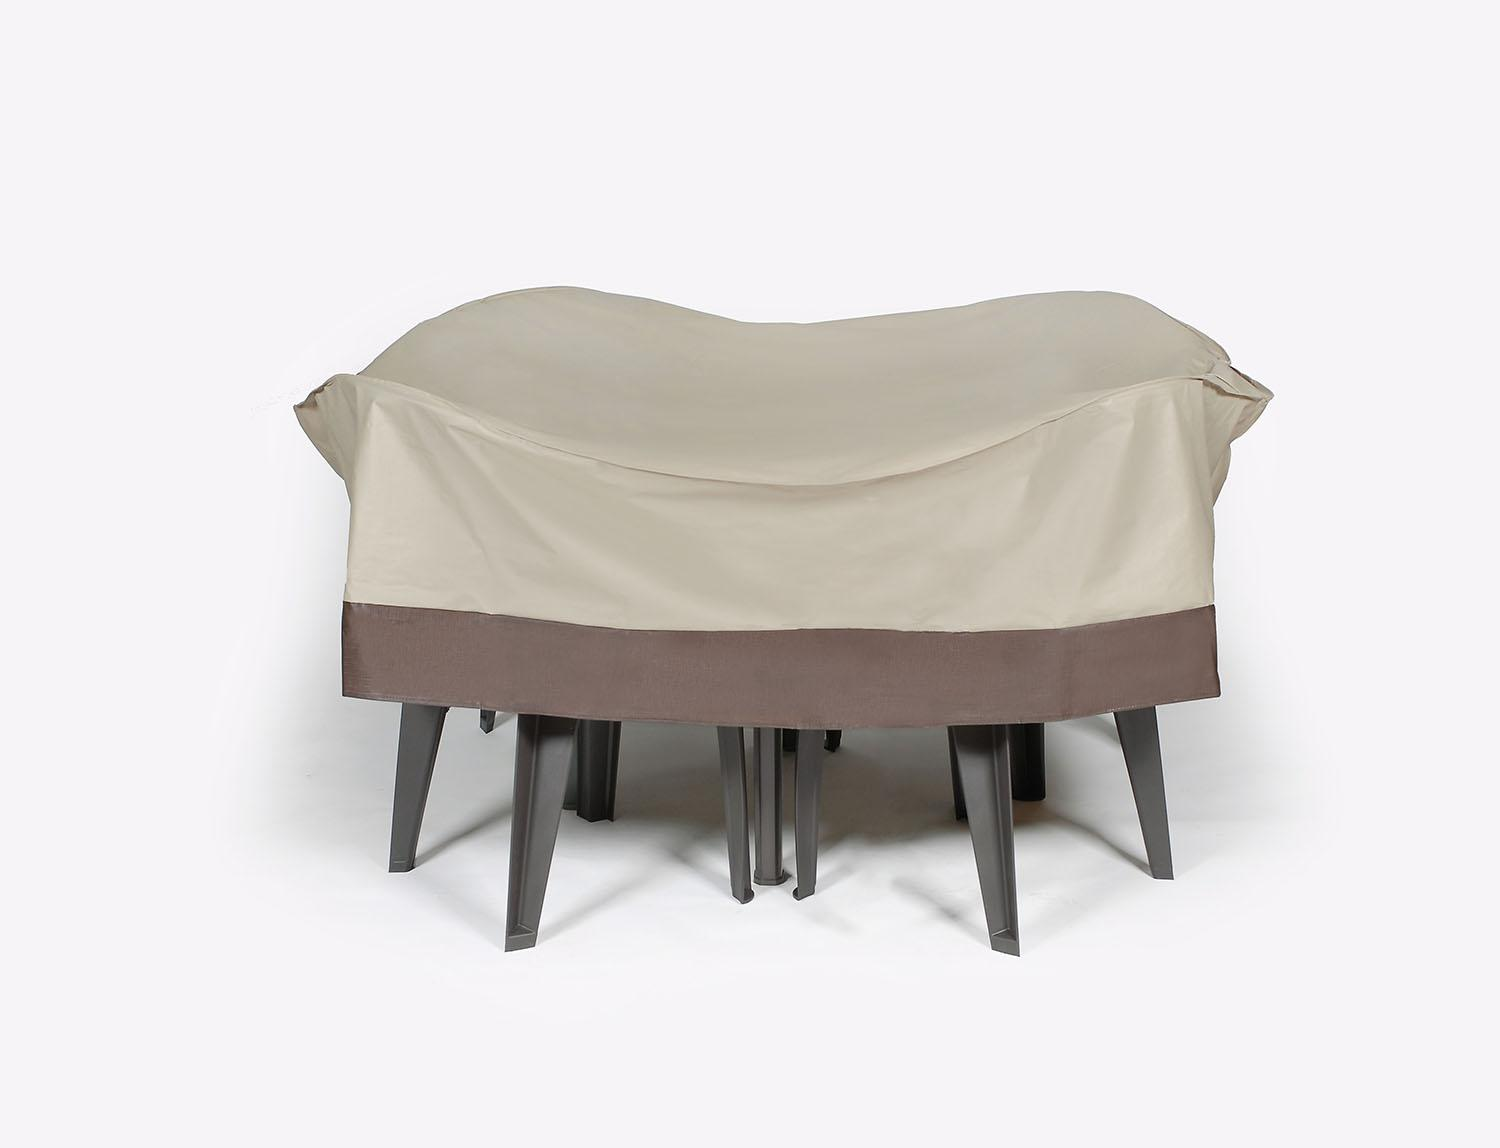 Durable Outdoor Round Patio Furniture Set Vinyl Cover Taupe With